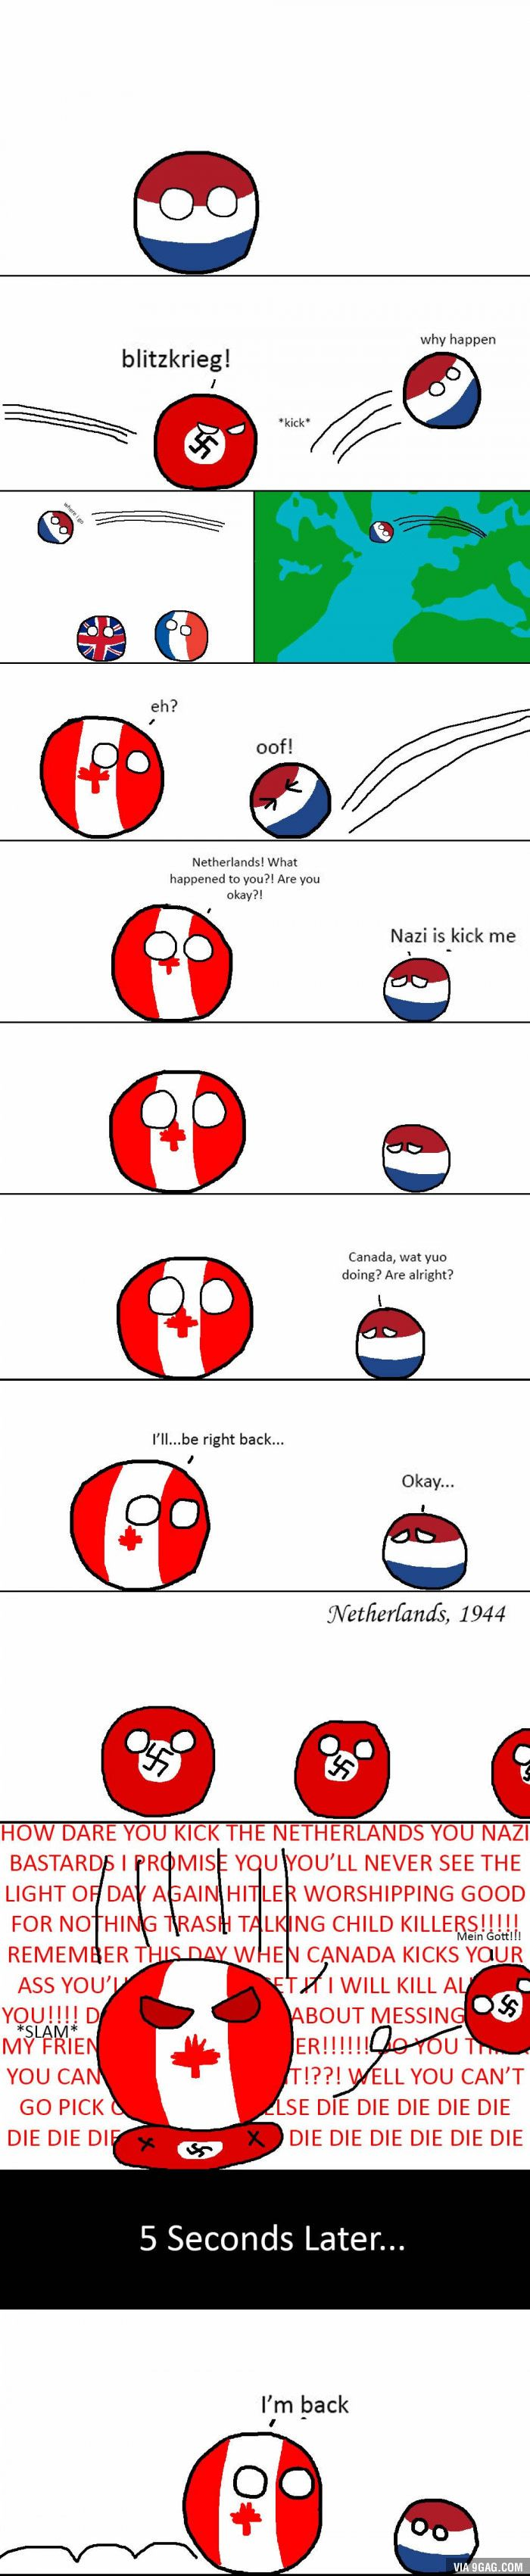 Countryballs: Canada comes to the Netherlands' aide